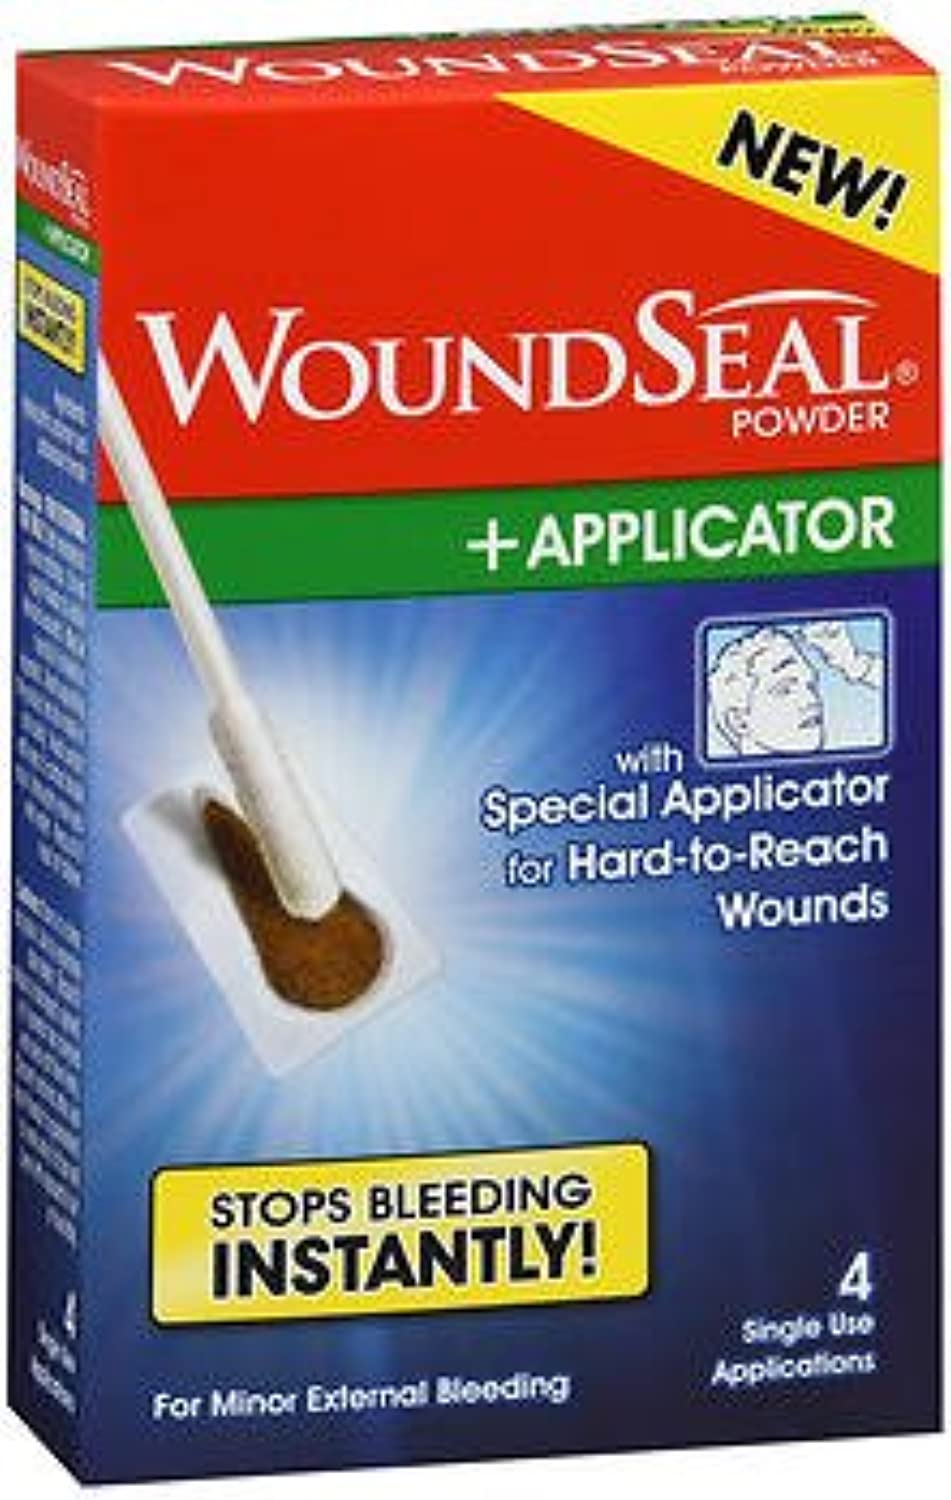 WoundSeal Powder with Applicator 4 single applications, Pack of 4